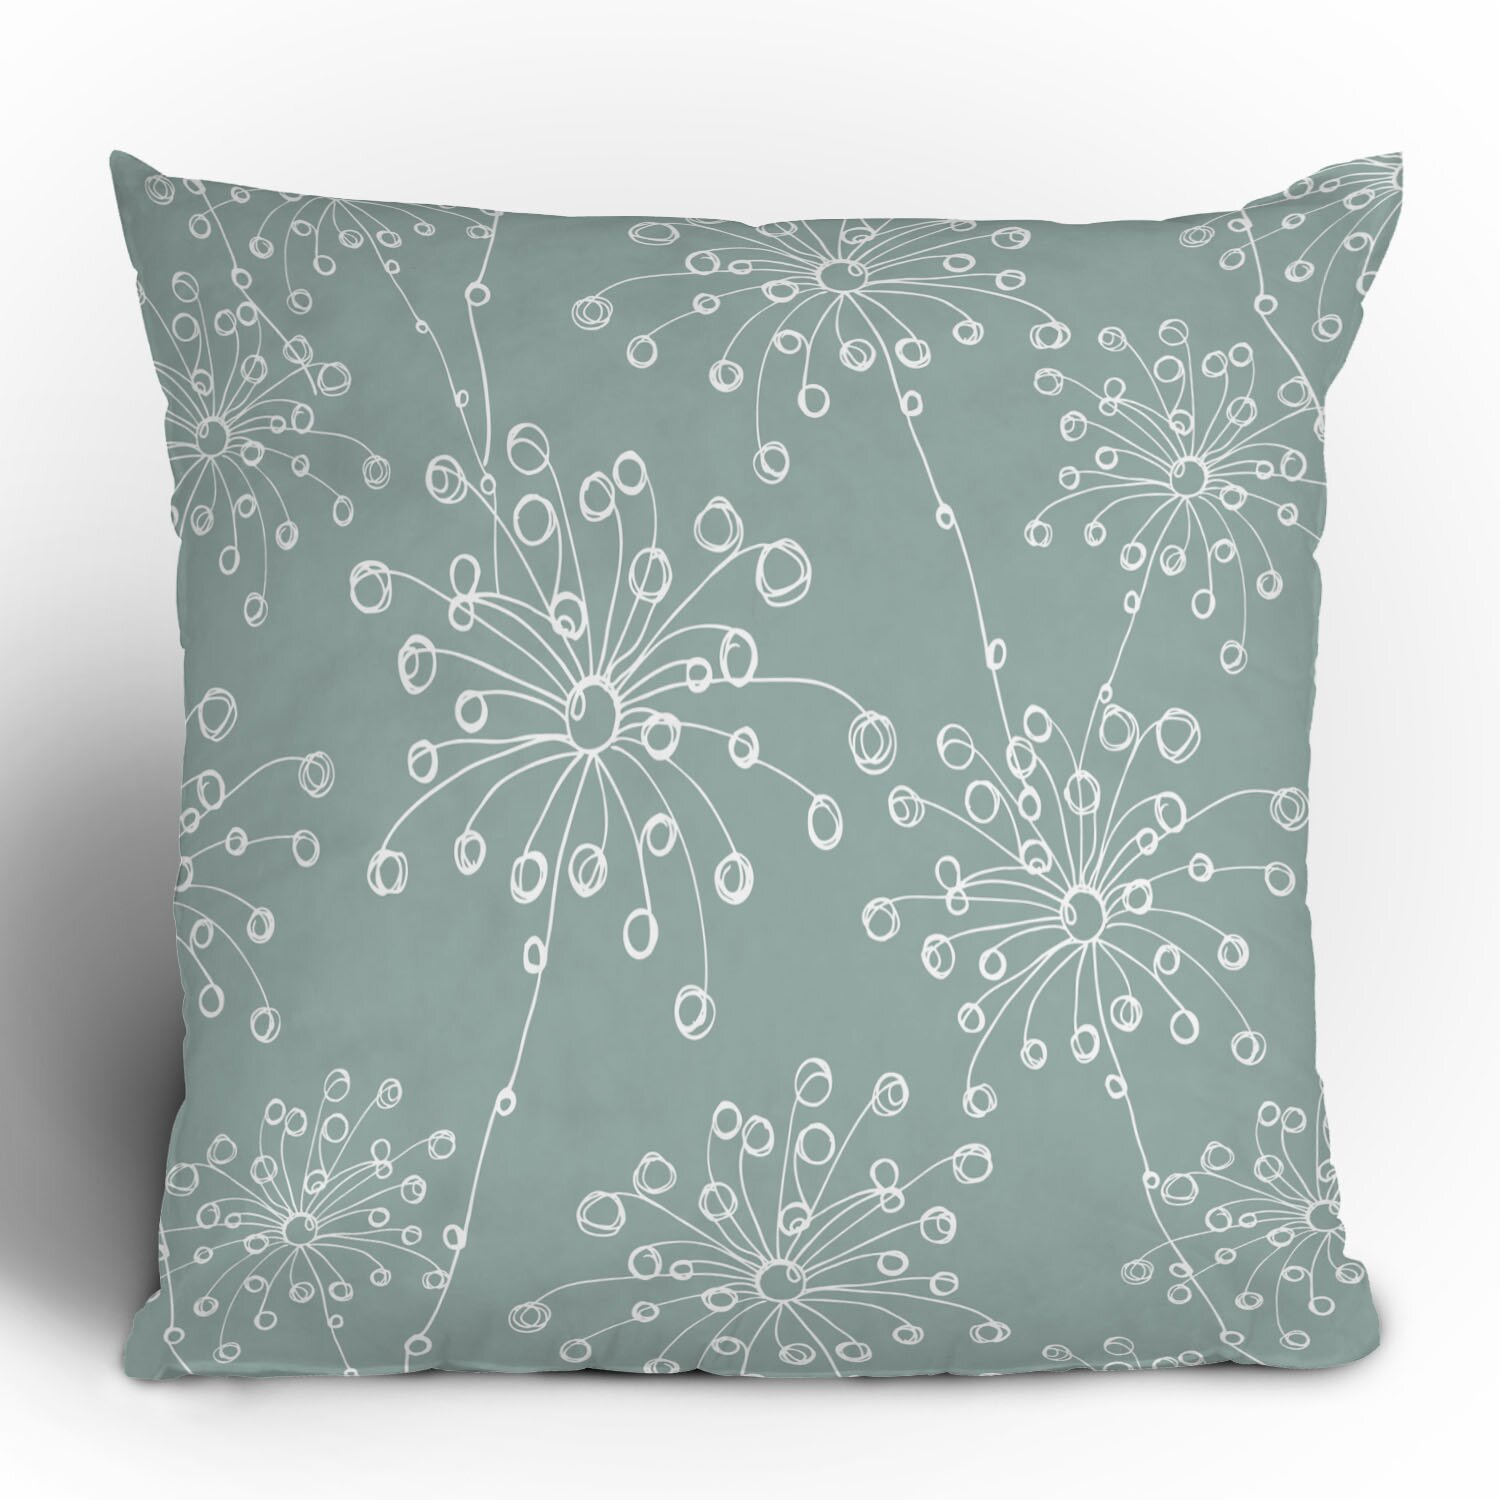 Quirky Throw Pillow : DENY Designs Rachael Taylor Quirky Motifs Throw Pillow & Reviews Wayfair.ca